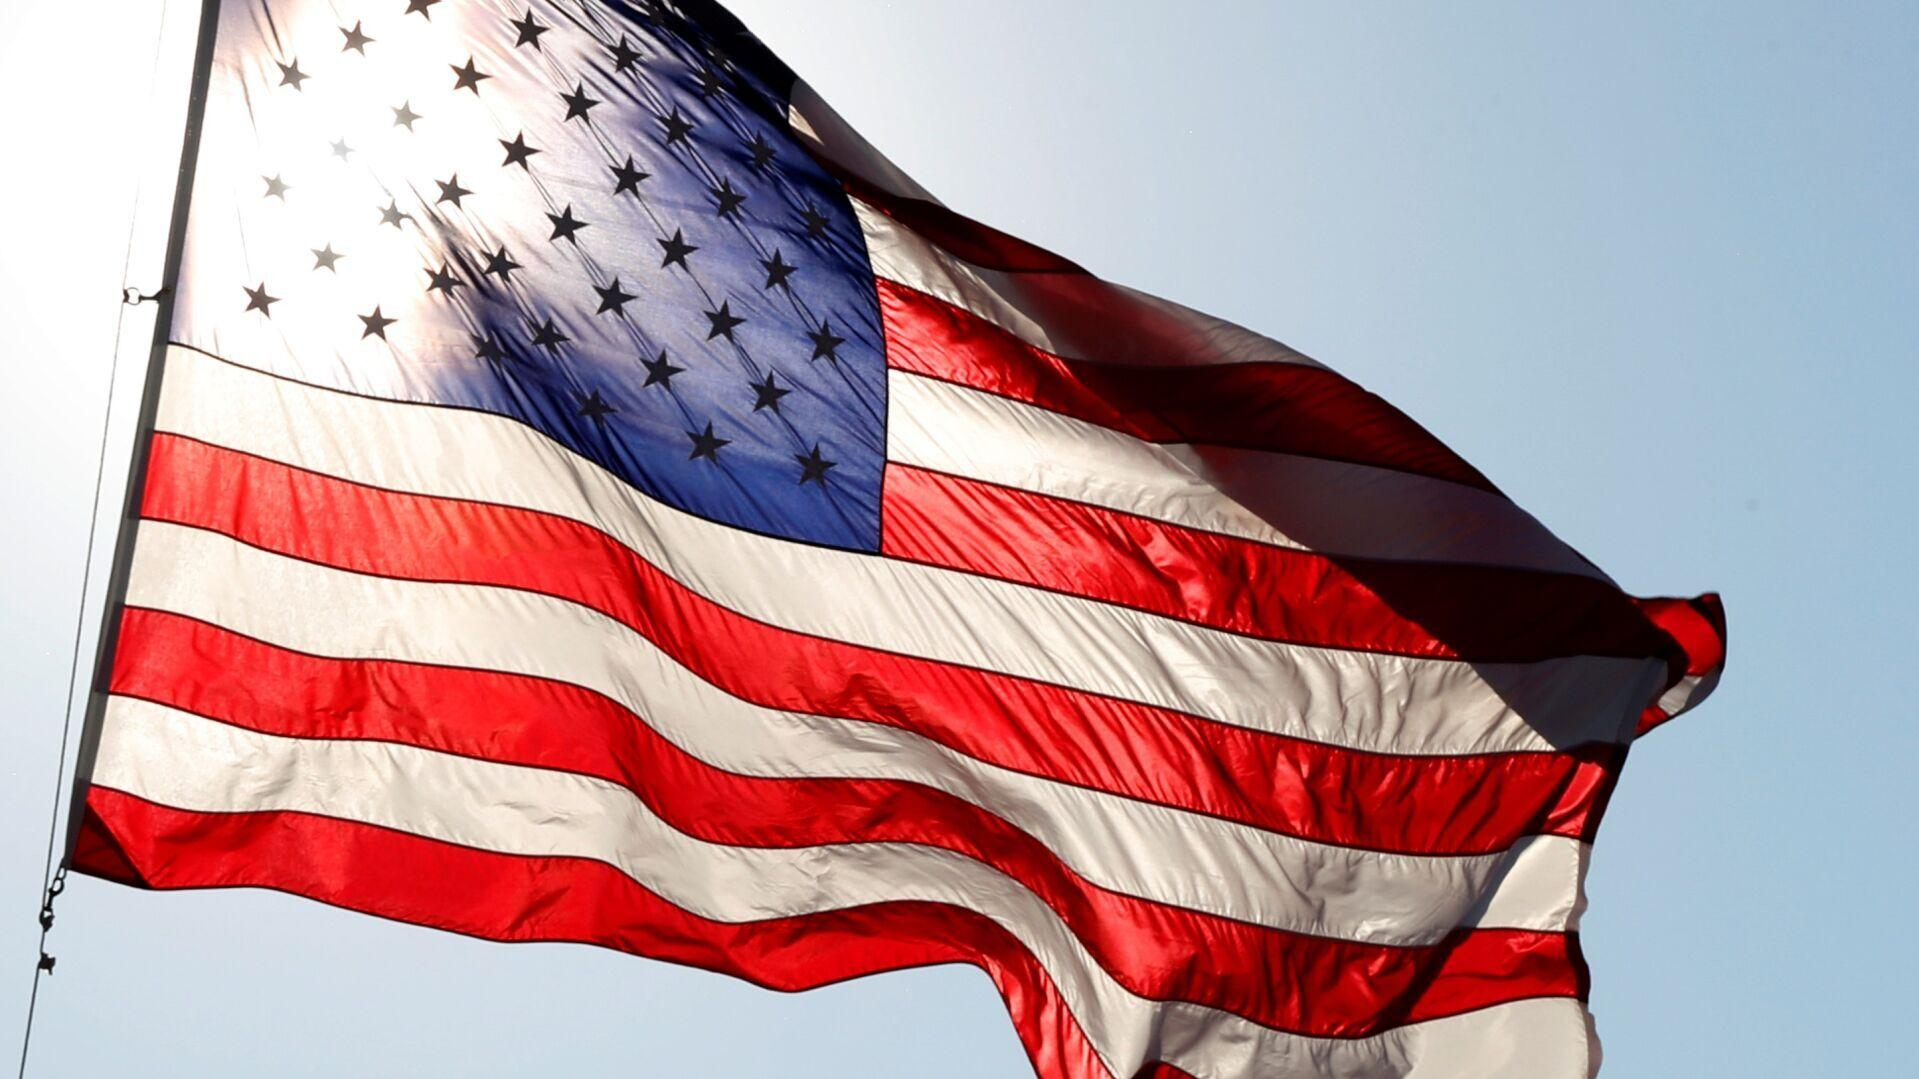 Today is Flag Day. Here's some history and tips on properly displaying the stars and stripes.